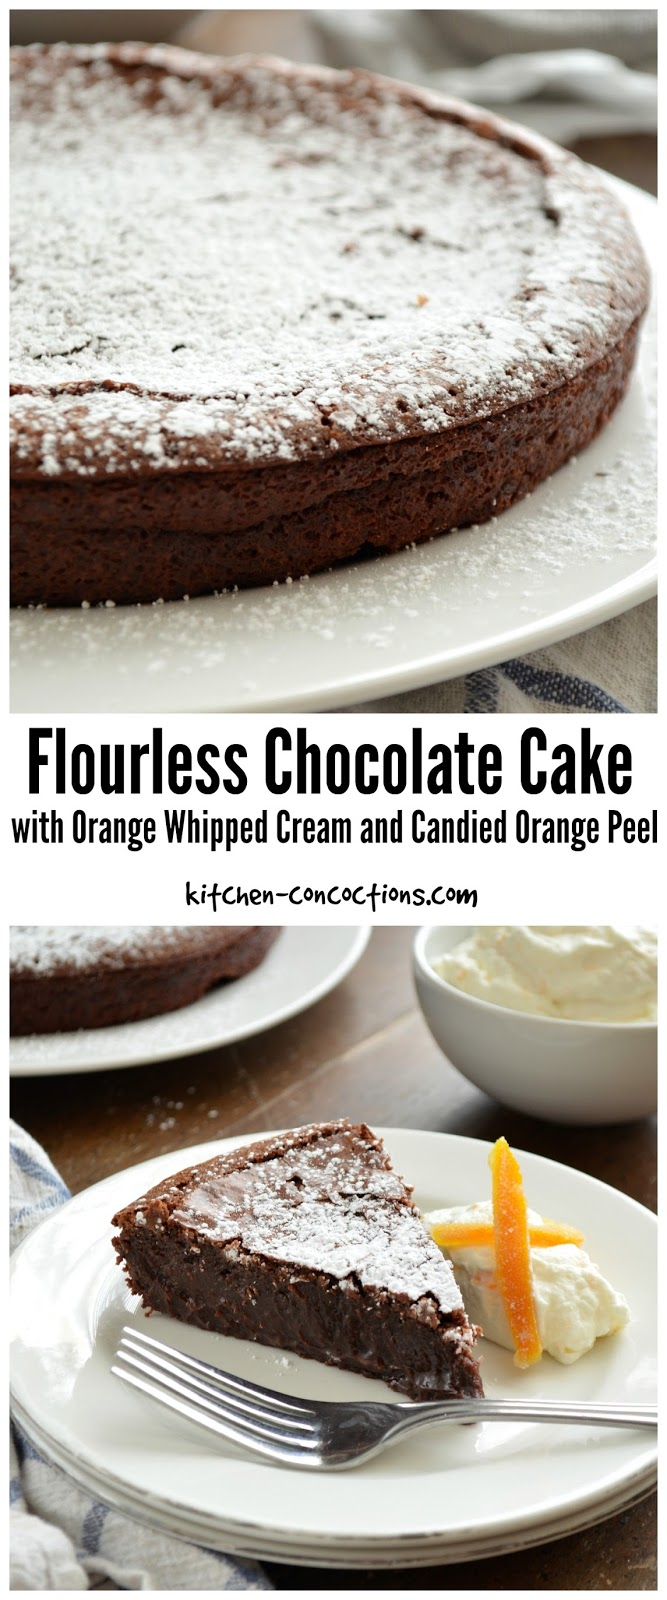 ... Flourless Chocolate Cake with Orange Whipped Cream and Candied Orange